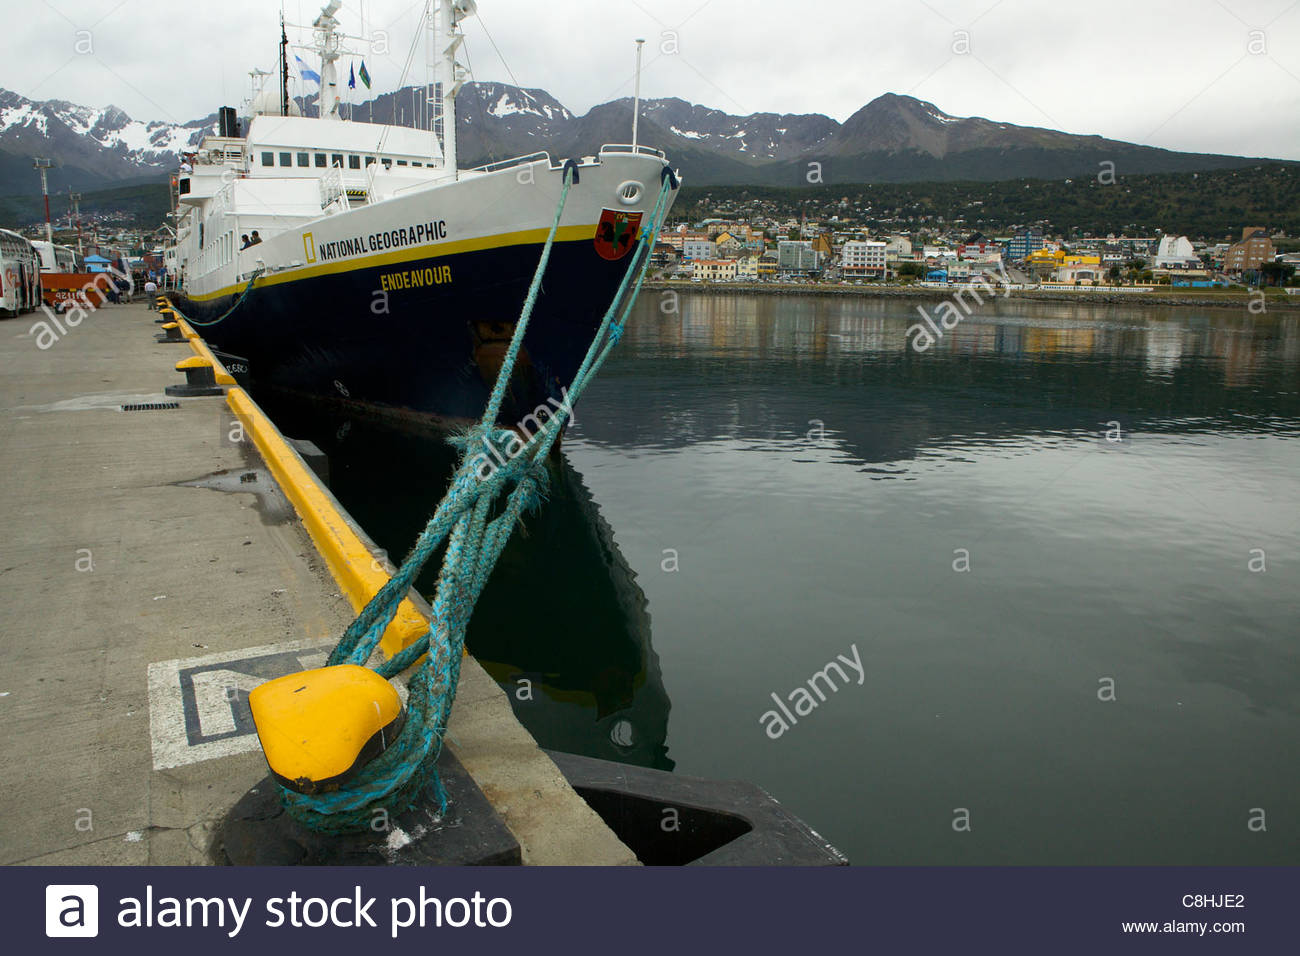 National Geographic Endeavor at the dock in Ushuaia, Argentina. - Stock Image